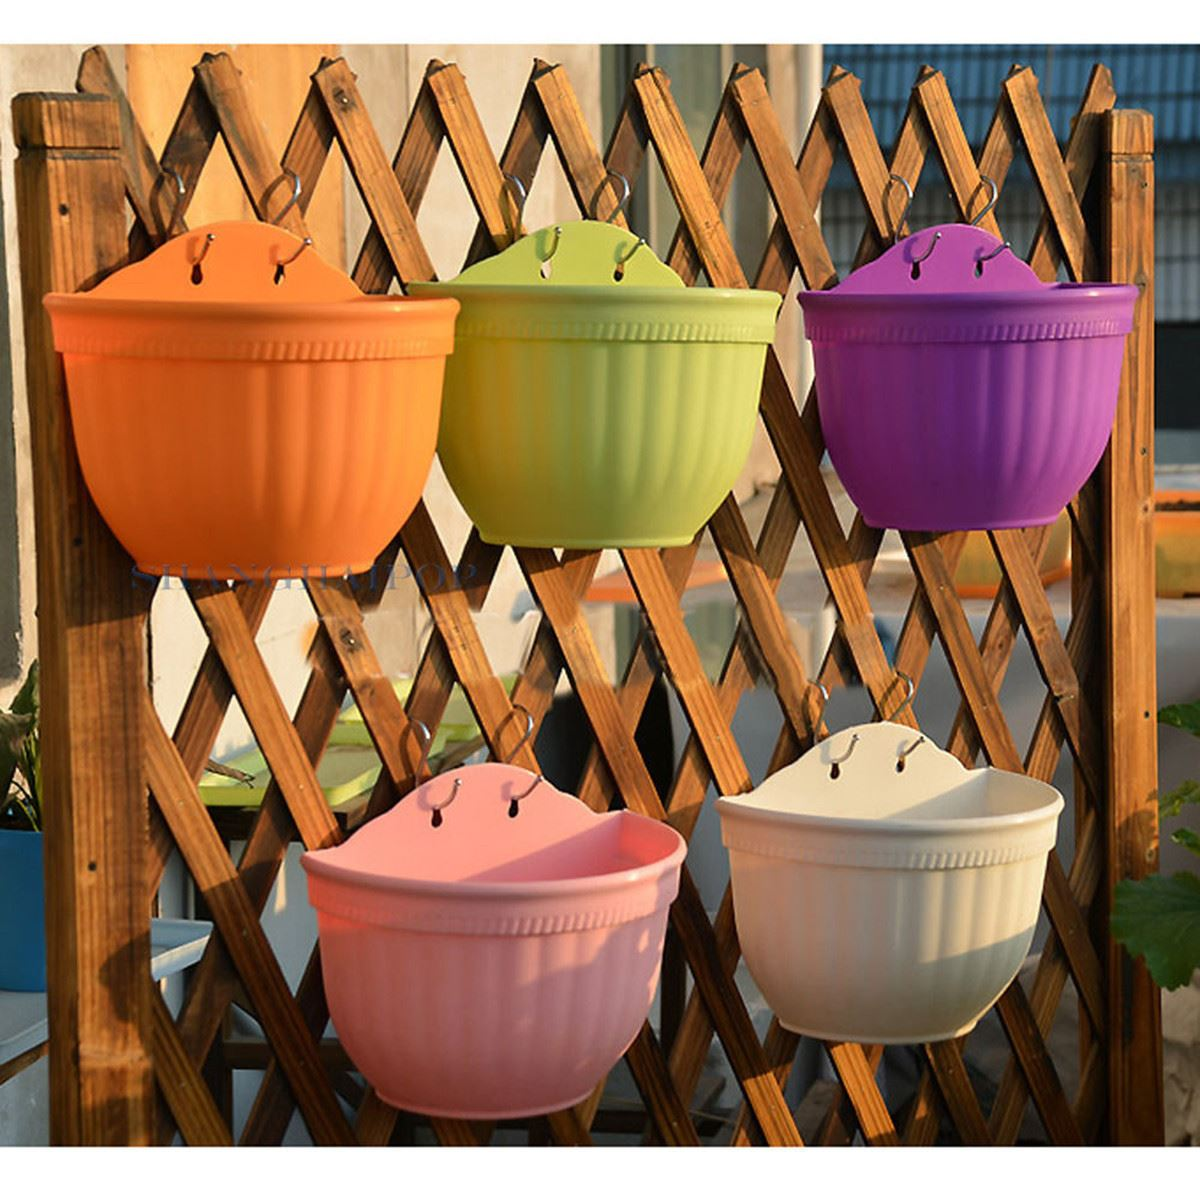 Colorful Plastic Flower Pots Wall Hanging Garden Half